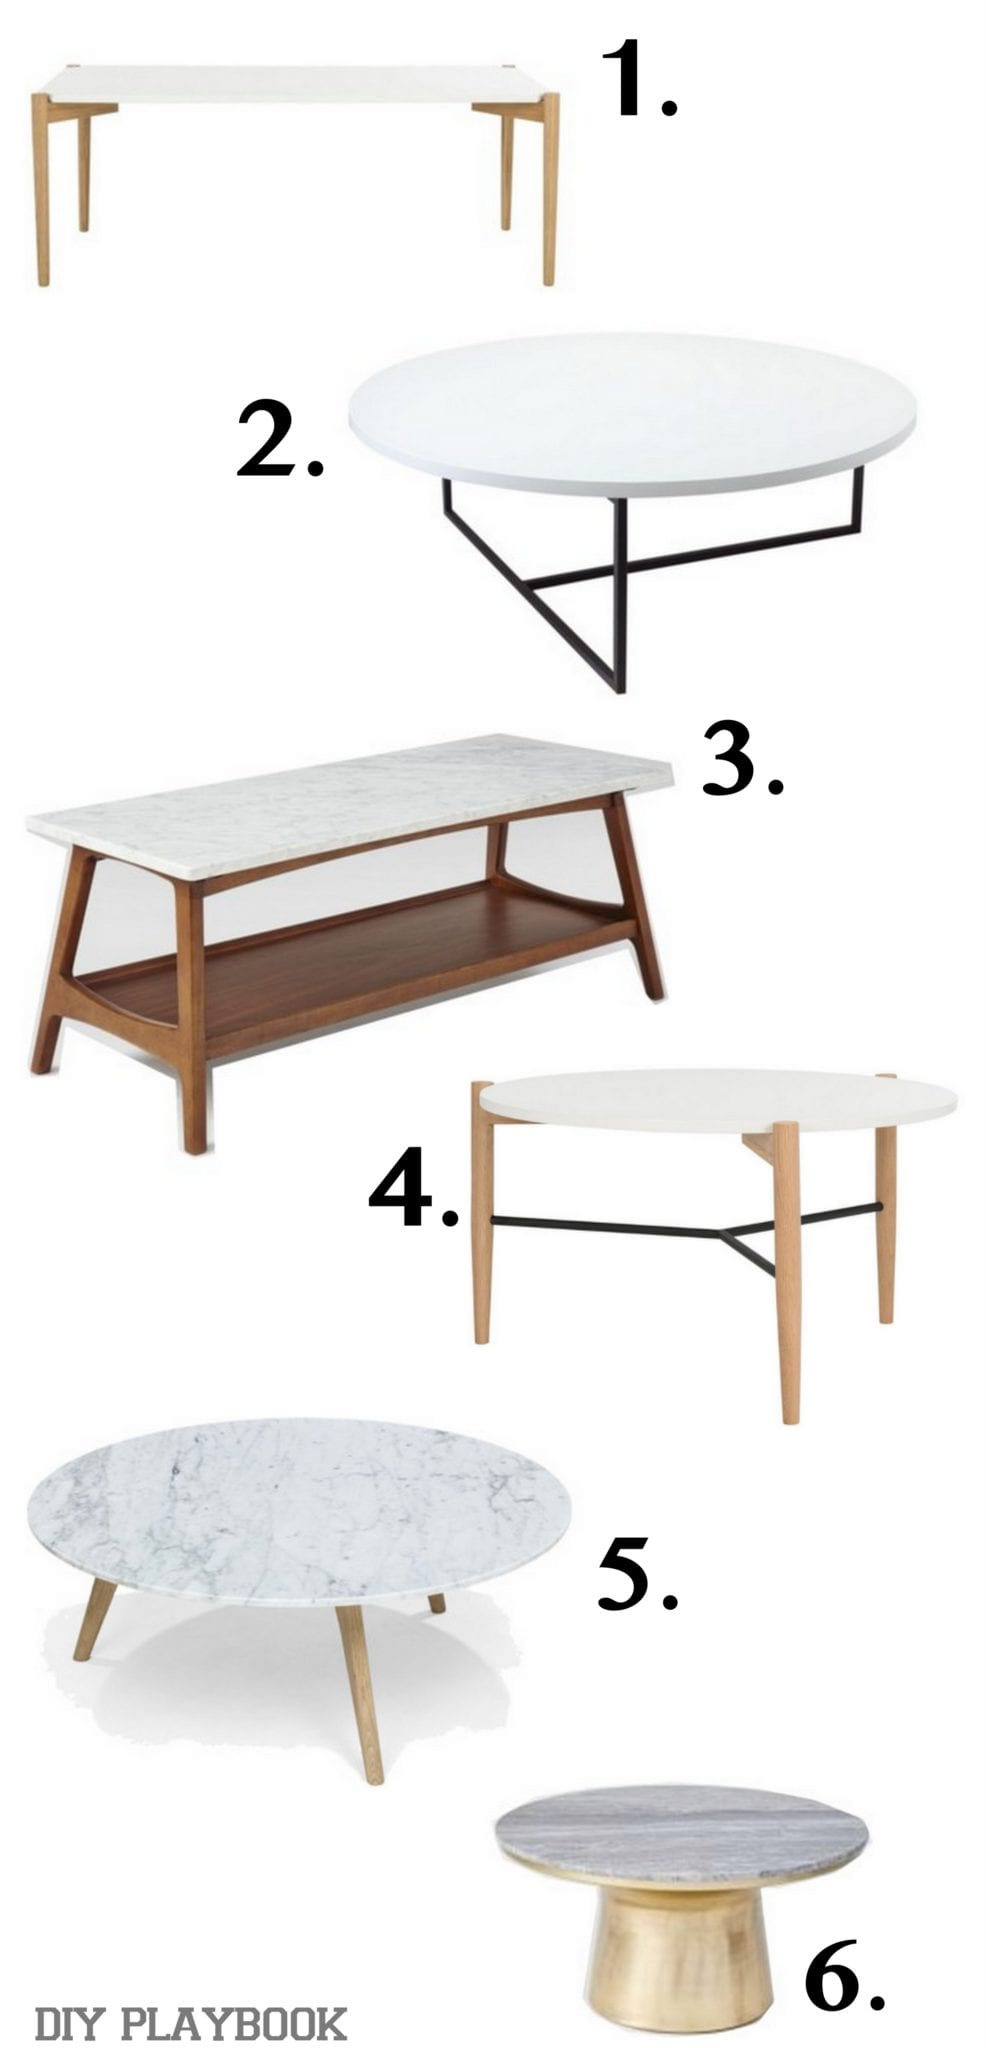 Choosing the Right Coffee Table for your Space | DIY Playbook